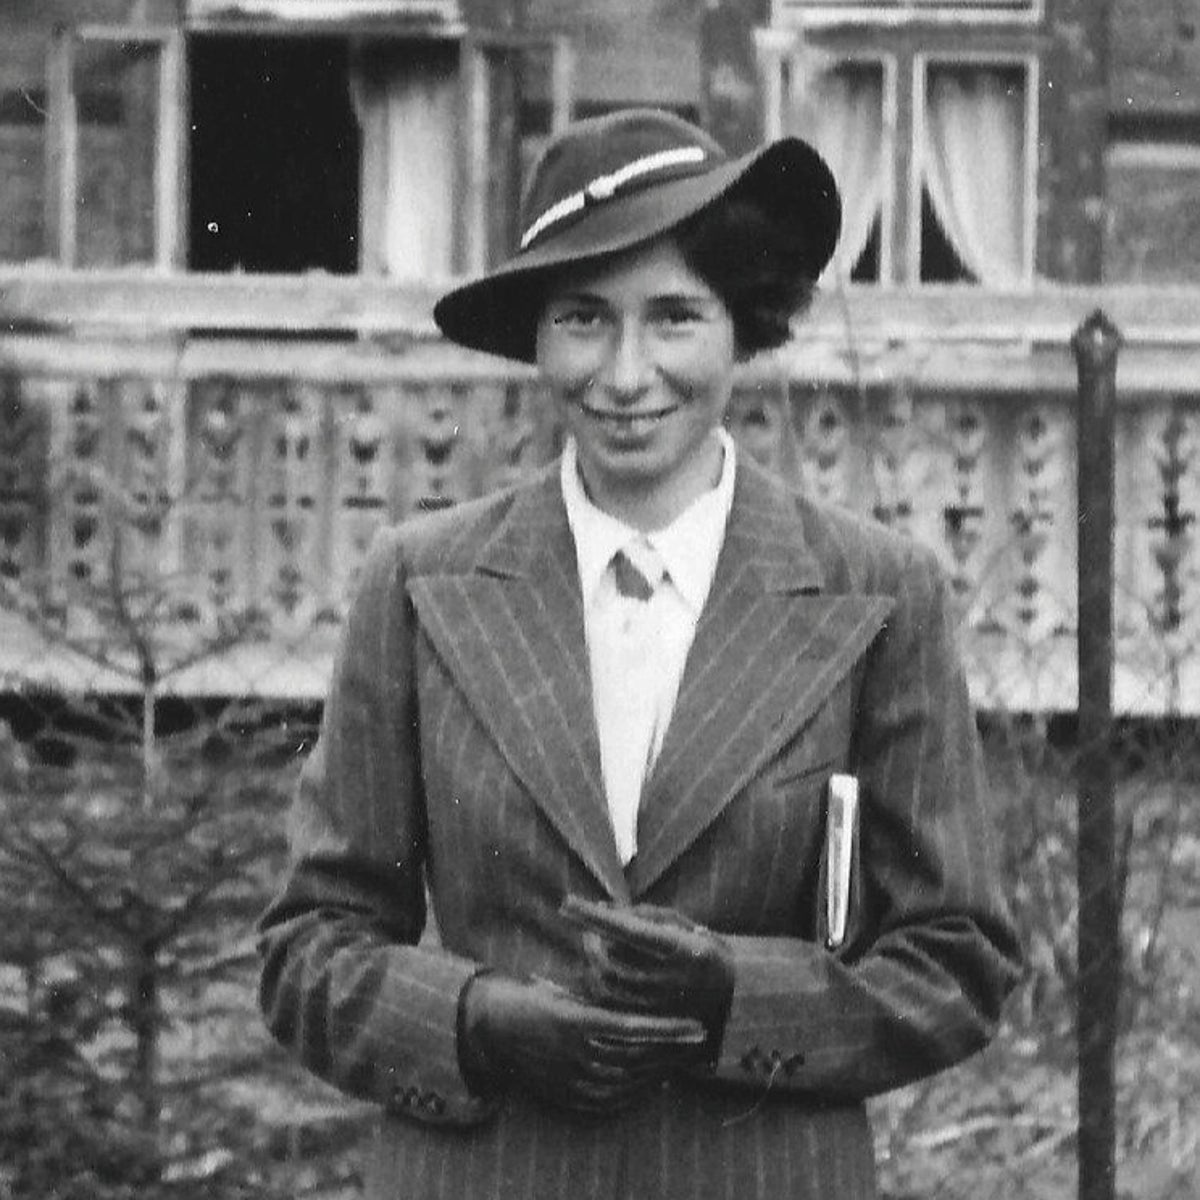 A 1936 image of Ursula Kuczynski, who spied for the Soviets through World War II and much of the Cold War.